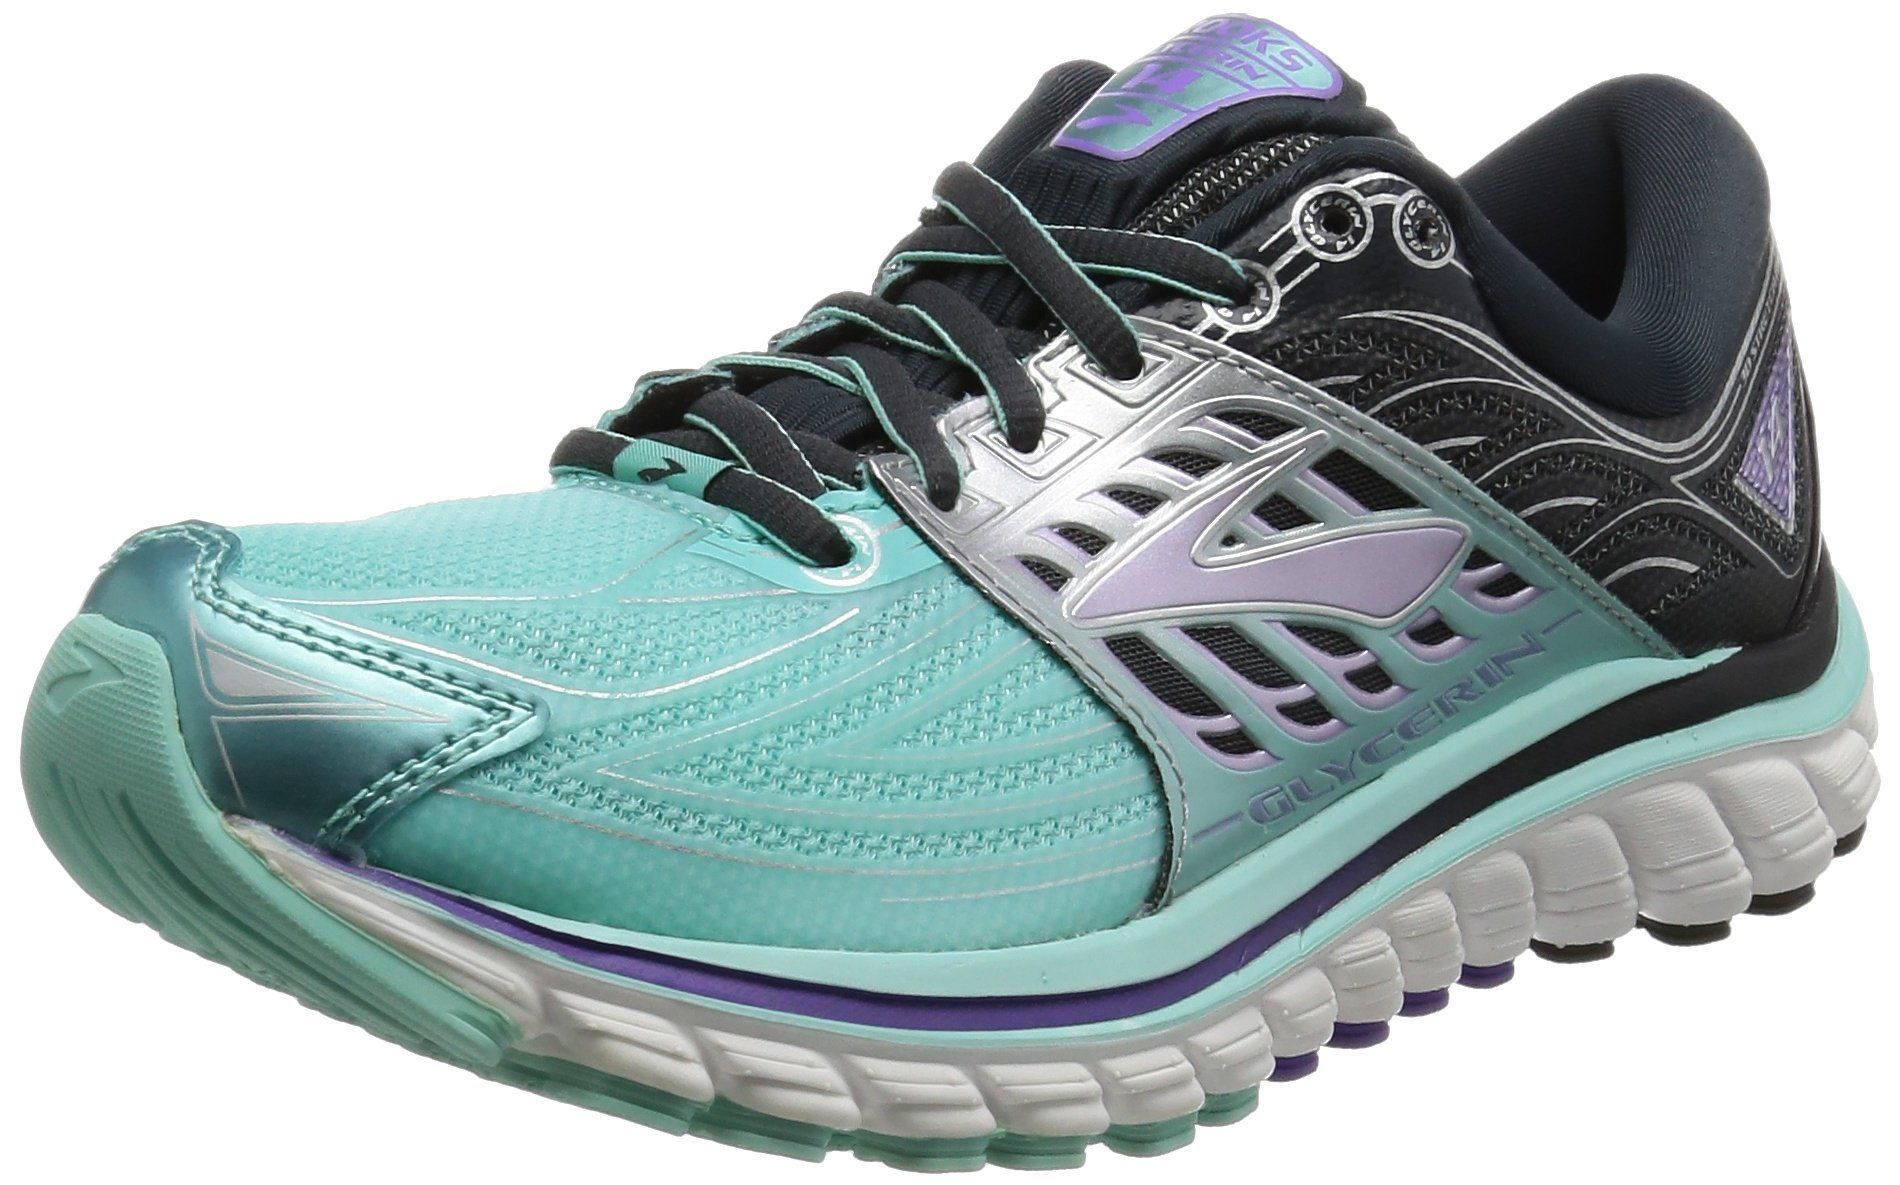 a678f1366e1db5 Brooks Womens Glycerin 14 Running Sneaker